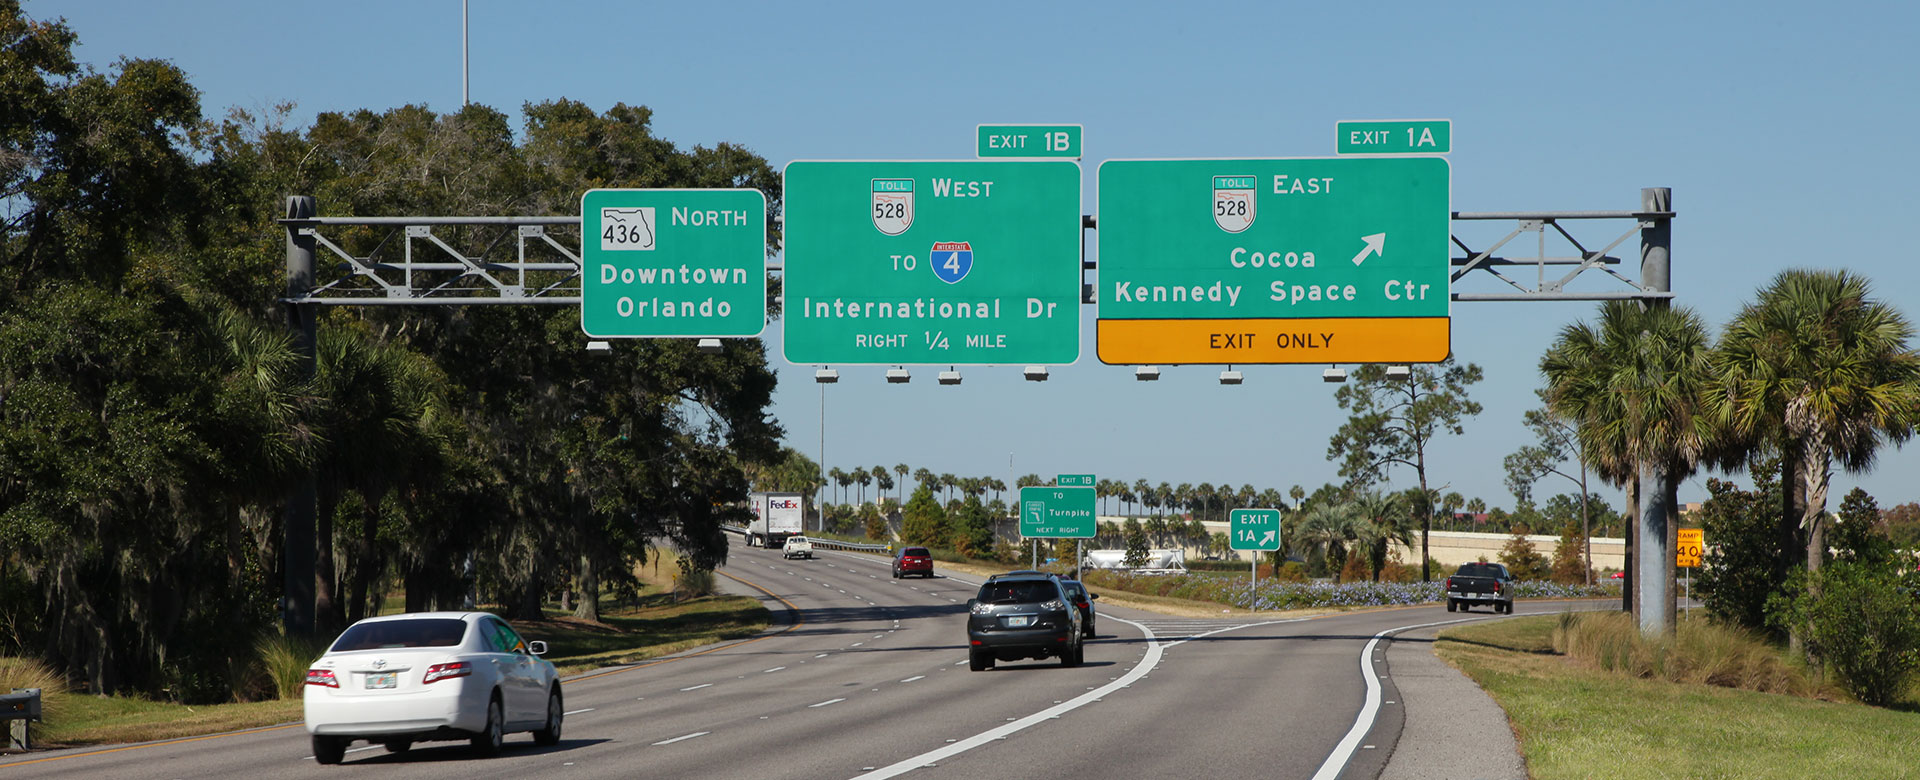 Road signs at exit from Orlando International Airport to state road 436 North, toll road 528 West to Interstate 4 and International Drive, and toll road 528 East to Cocoa Beach Kennedy Space Center